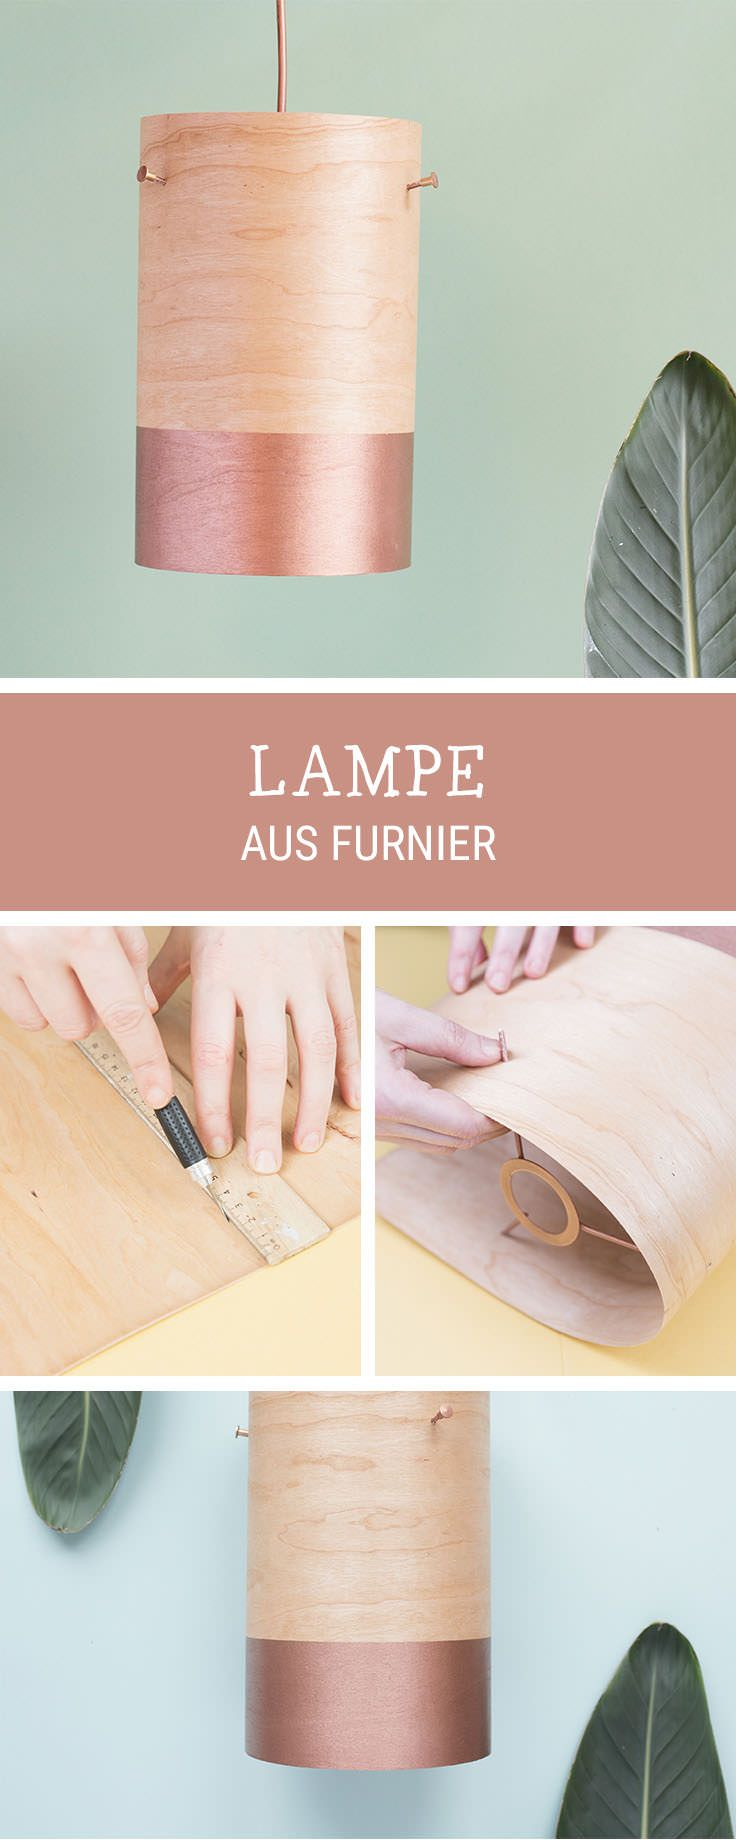 die besten 17 ideen zu furnier auf pinterest malerei furnier diy beton und diy lampe. Black Bedroom Furniture Sets. Home Design Ideas